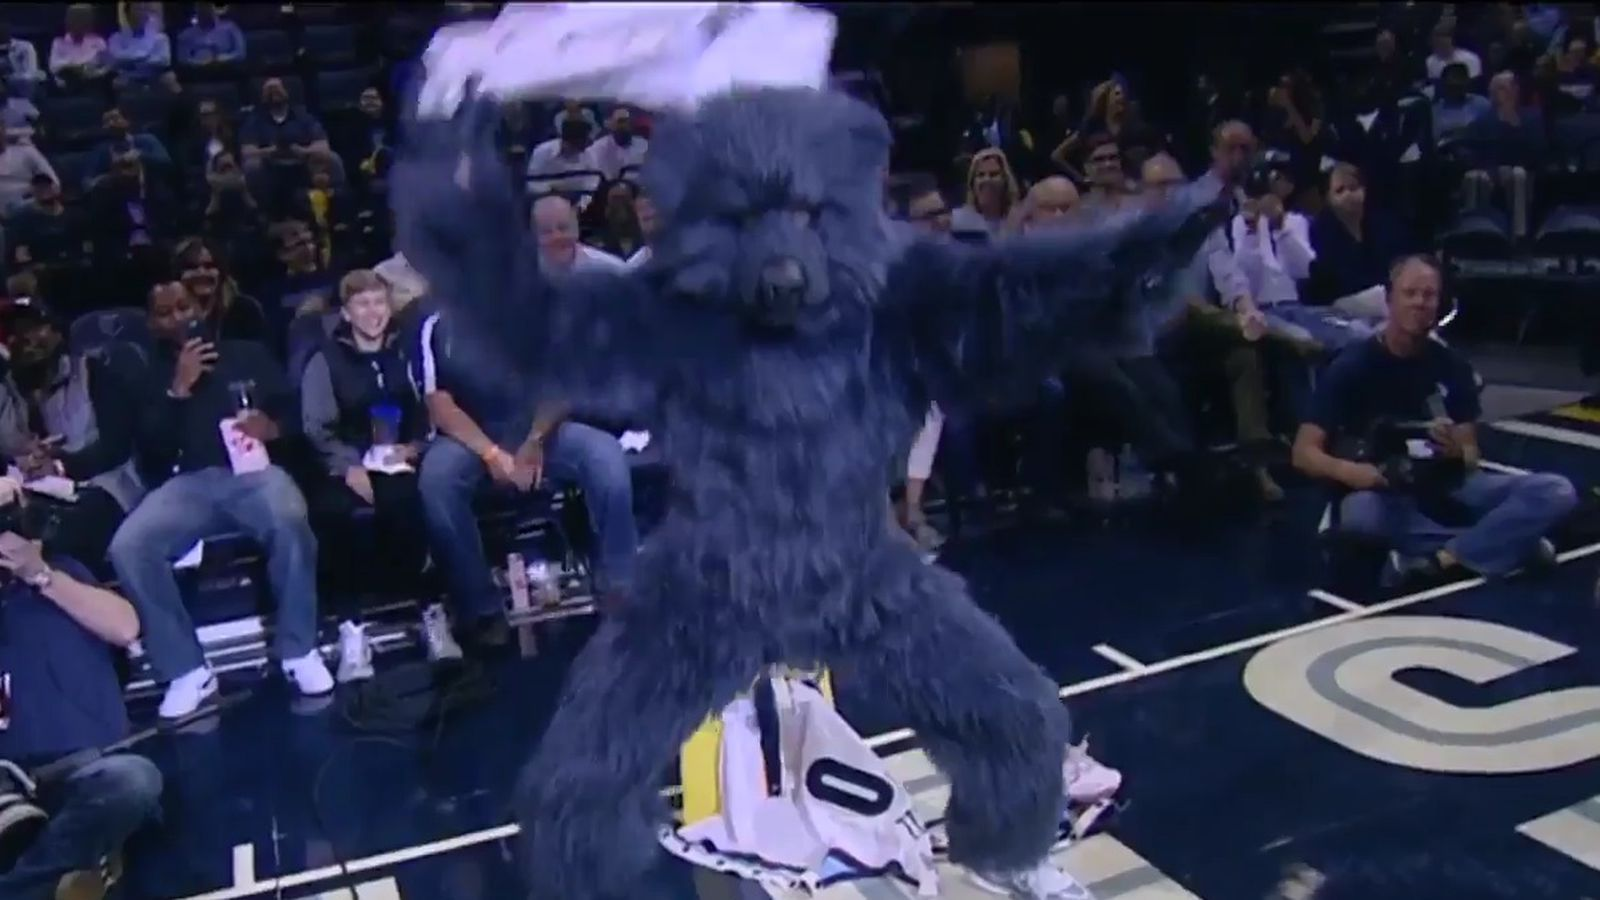 The Grizzlies mascot stripping and dancing to 'Pony' is